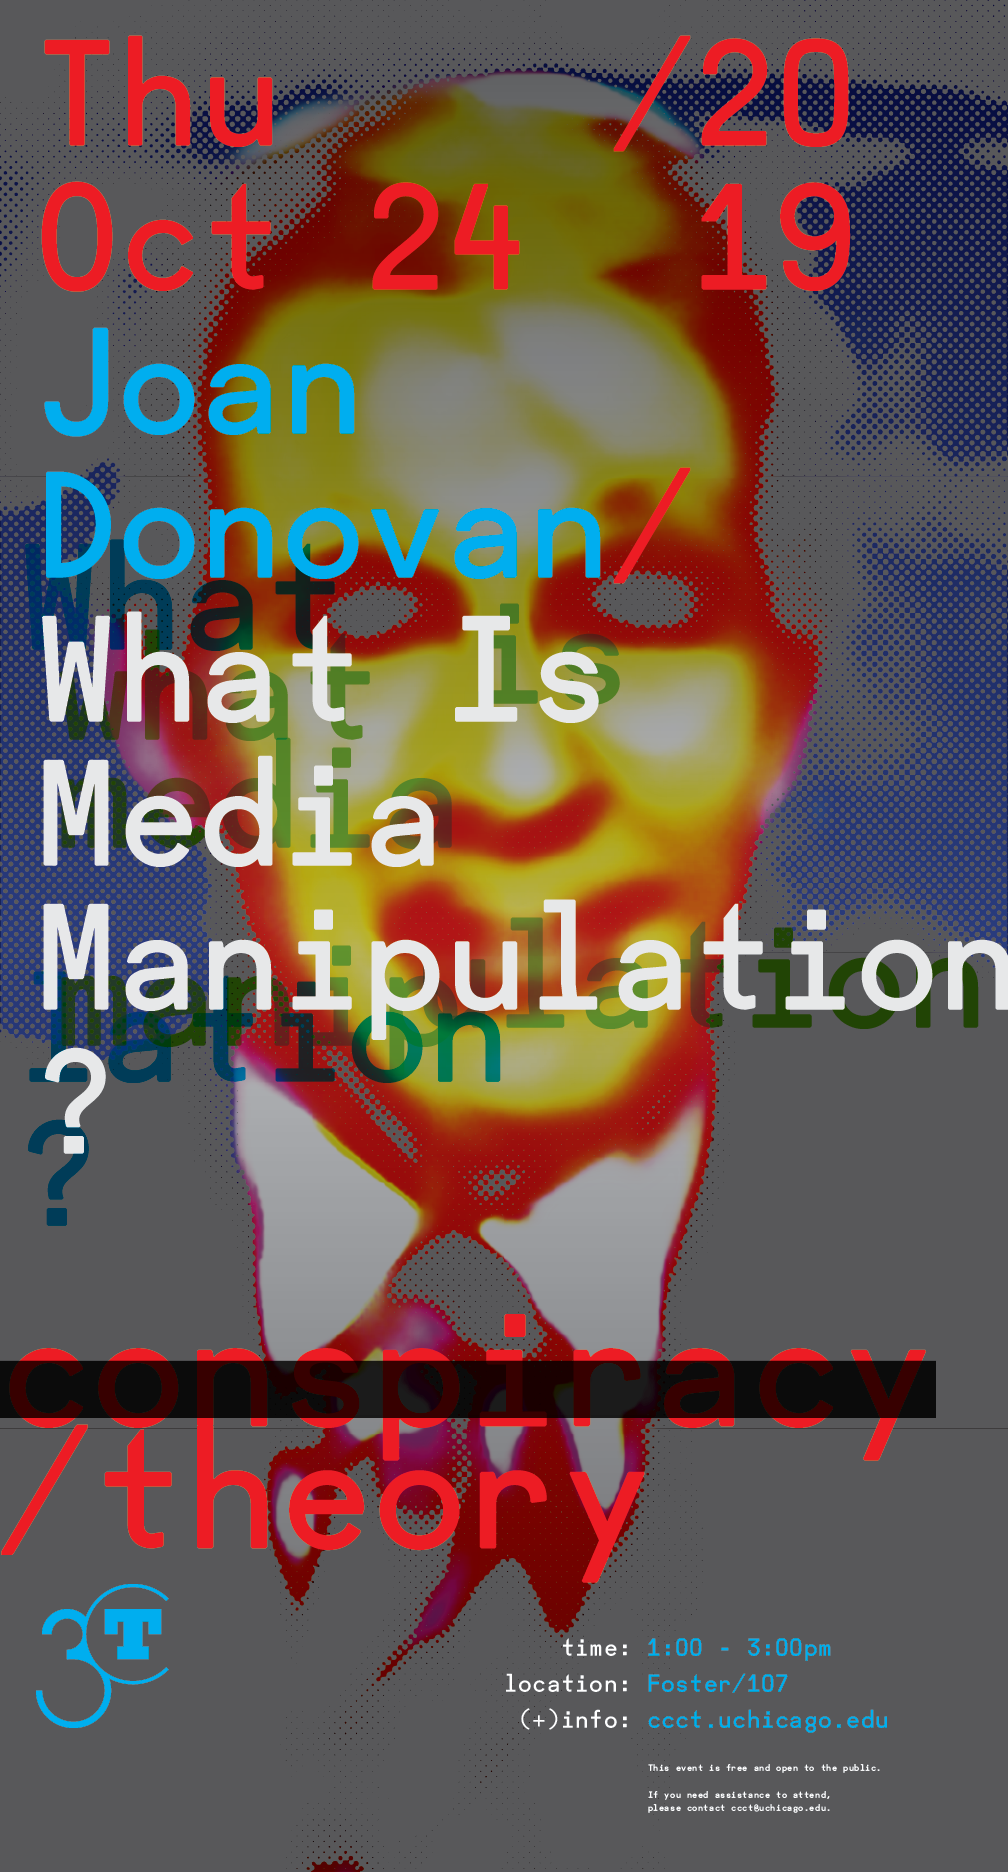 Poster for Joan Donovan What is Media Manipulation? event featuring blurred image of figure in suit